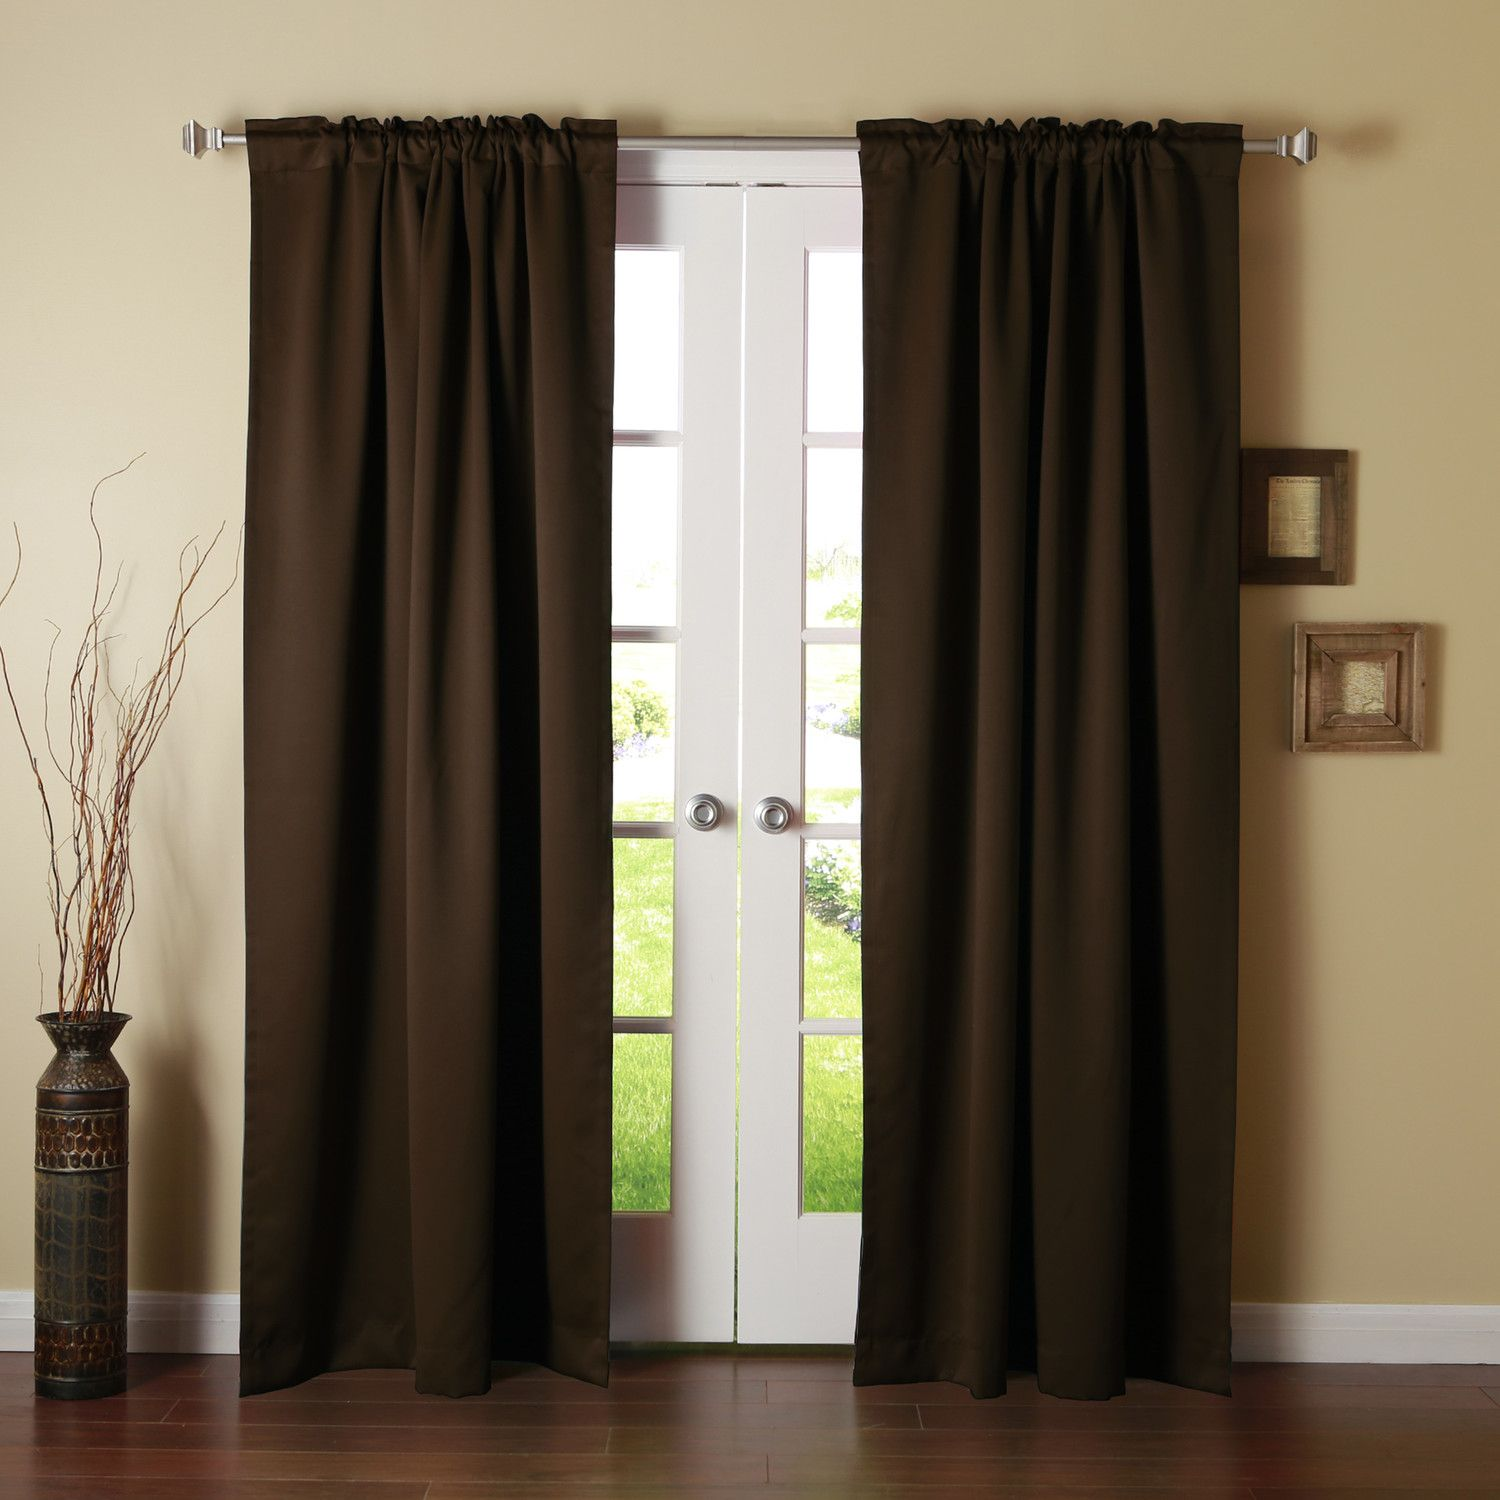 Best Home Fashion Inc Thermal Insulated Blackout Curtain Panel